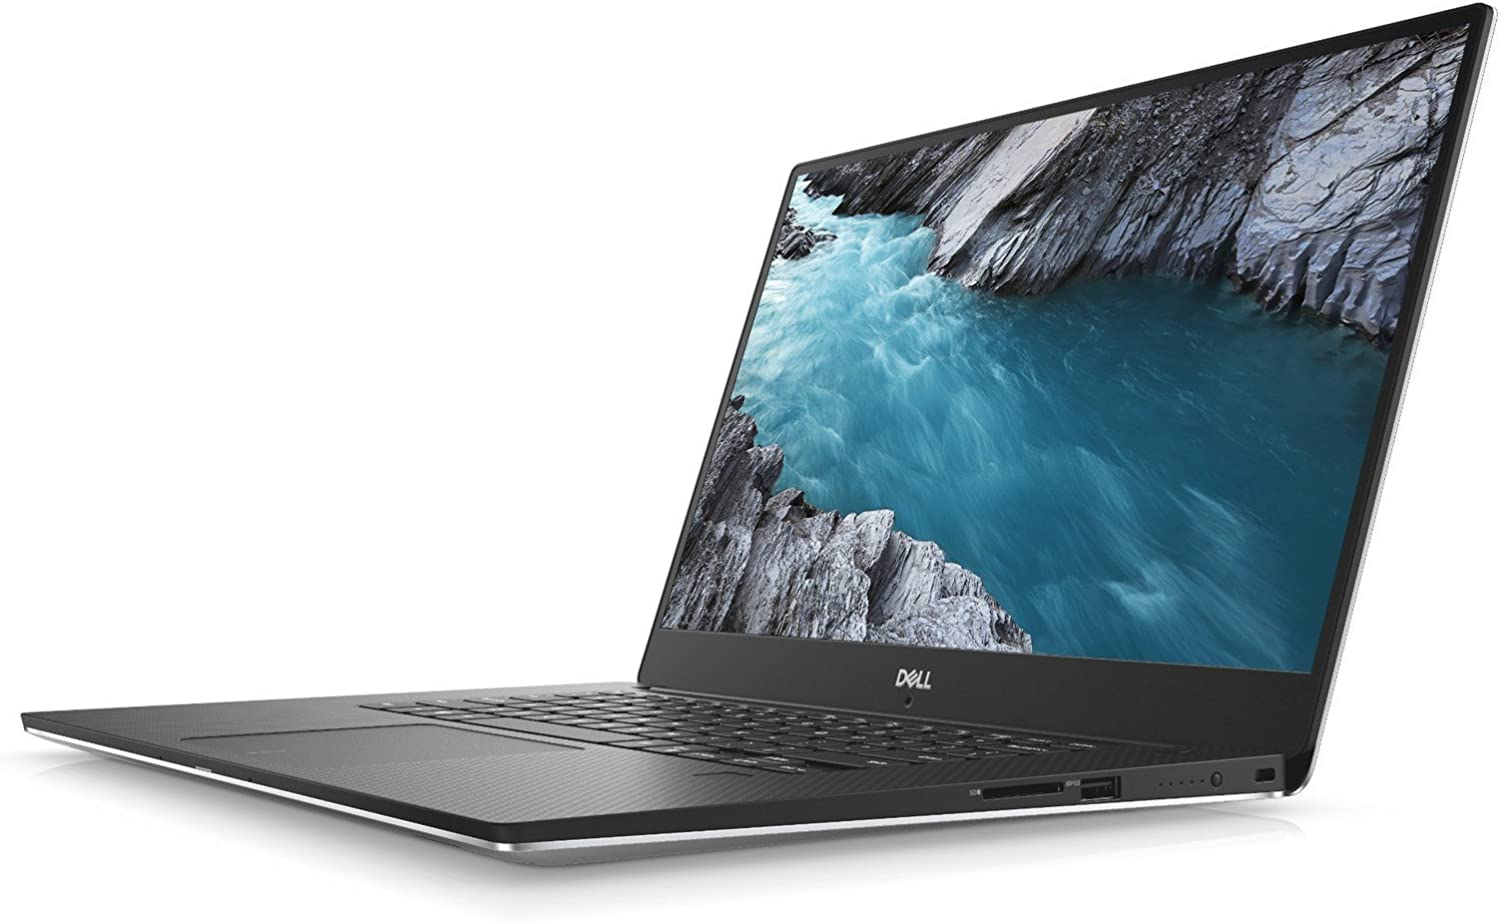 Dell XPS 9570, 15.6in UHD (3840 x 2160) InfinityEdge Touch Display, 8th Gen Intel Core i7-8750H, 32GB RAM, 1TB SSD, GeForce GTX 1050Ti, Fingerprint Reader, Windows 10 Pro, Silver (Renewed)